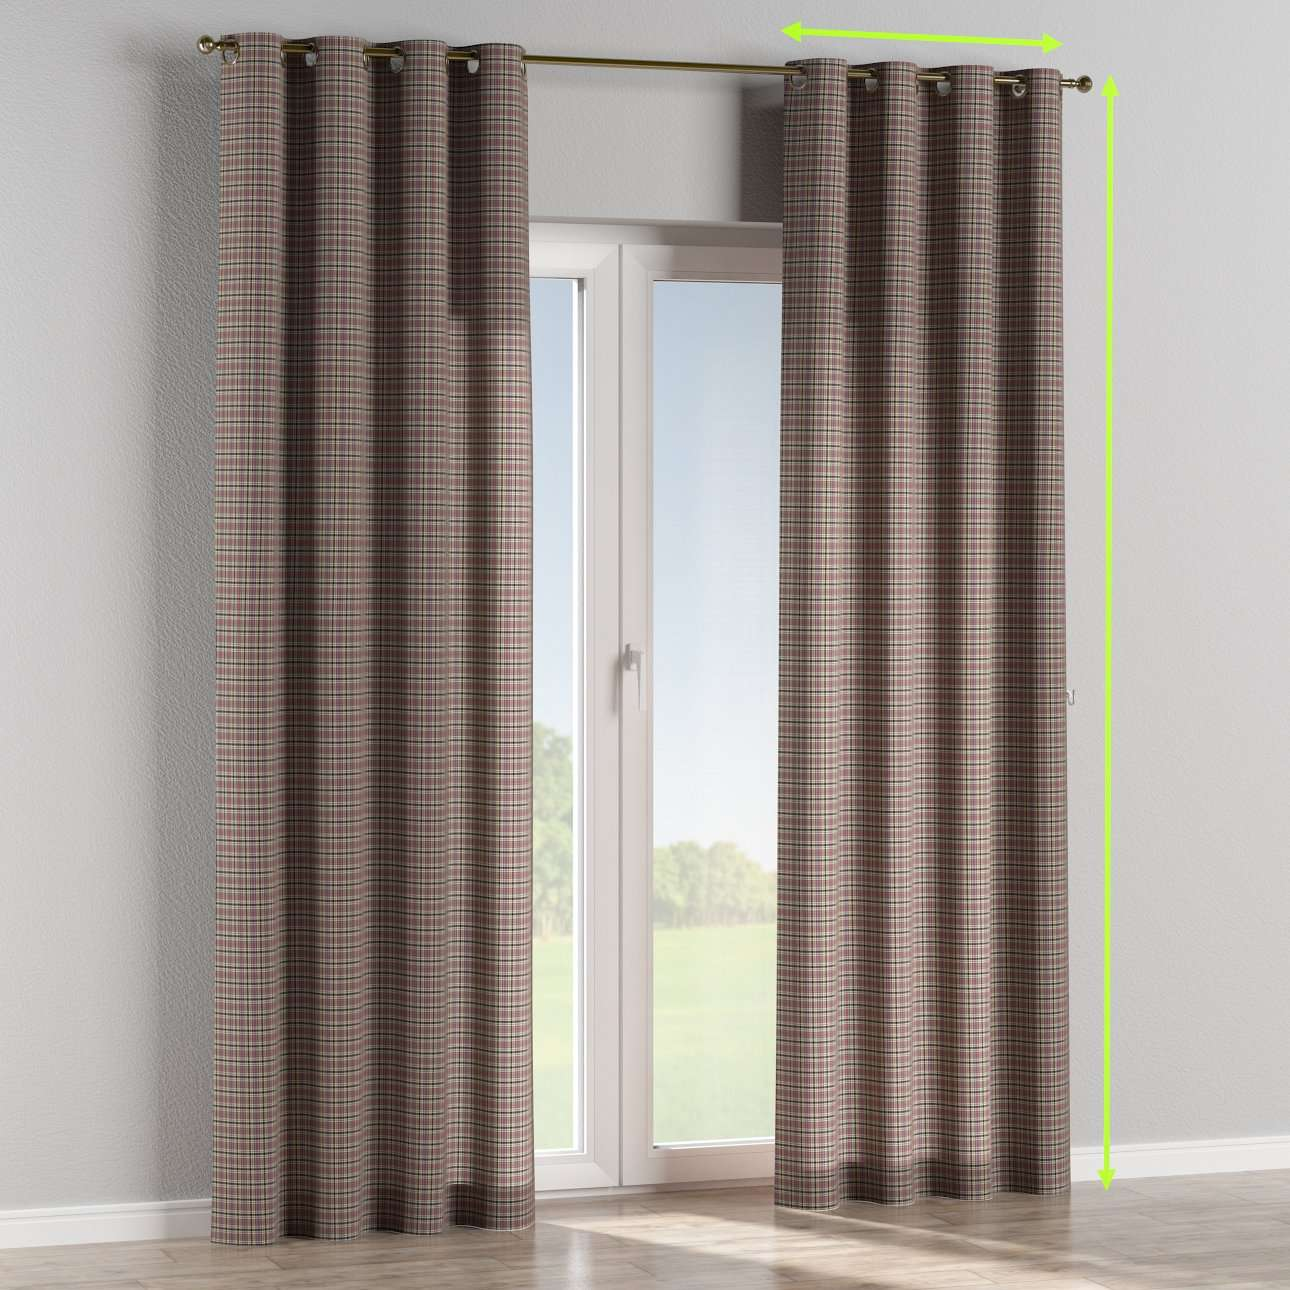 Eyelet lined curtains in collection Bristol, fabric: 126-32